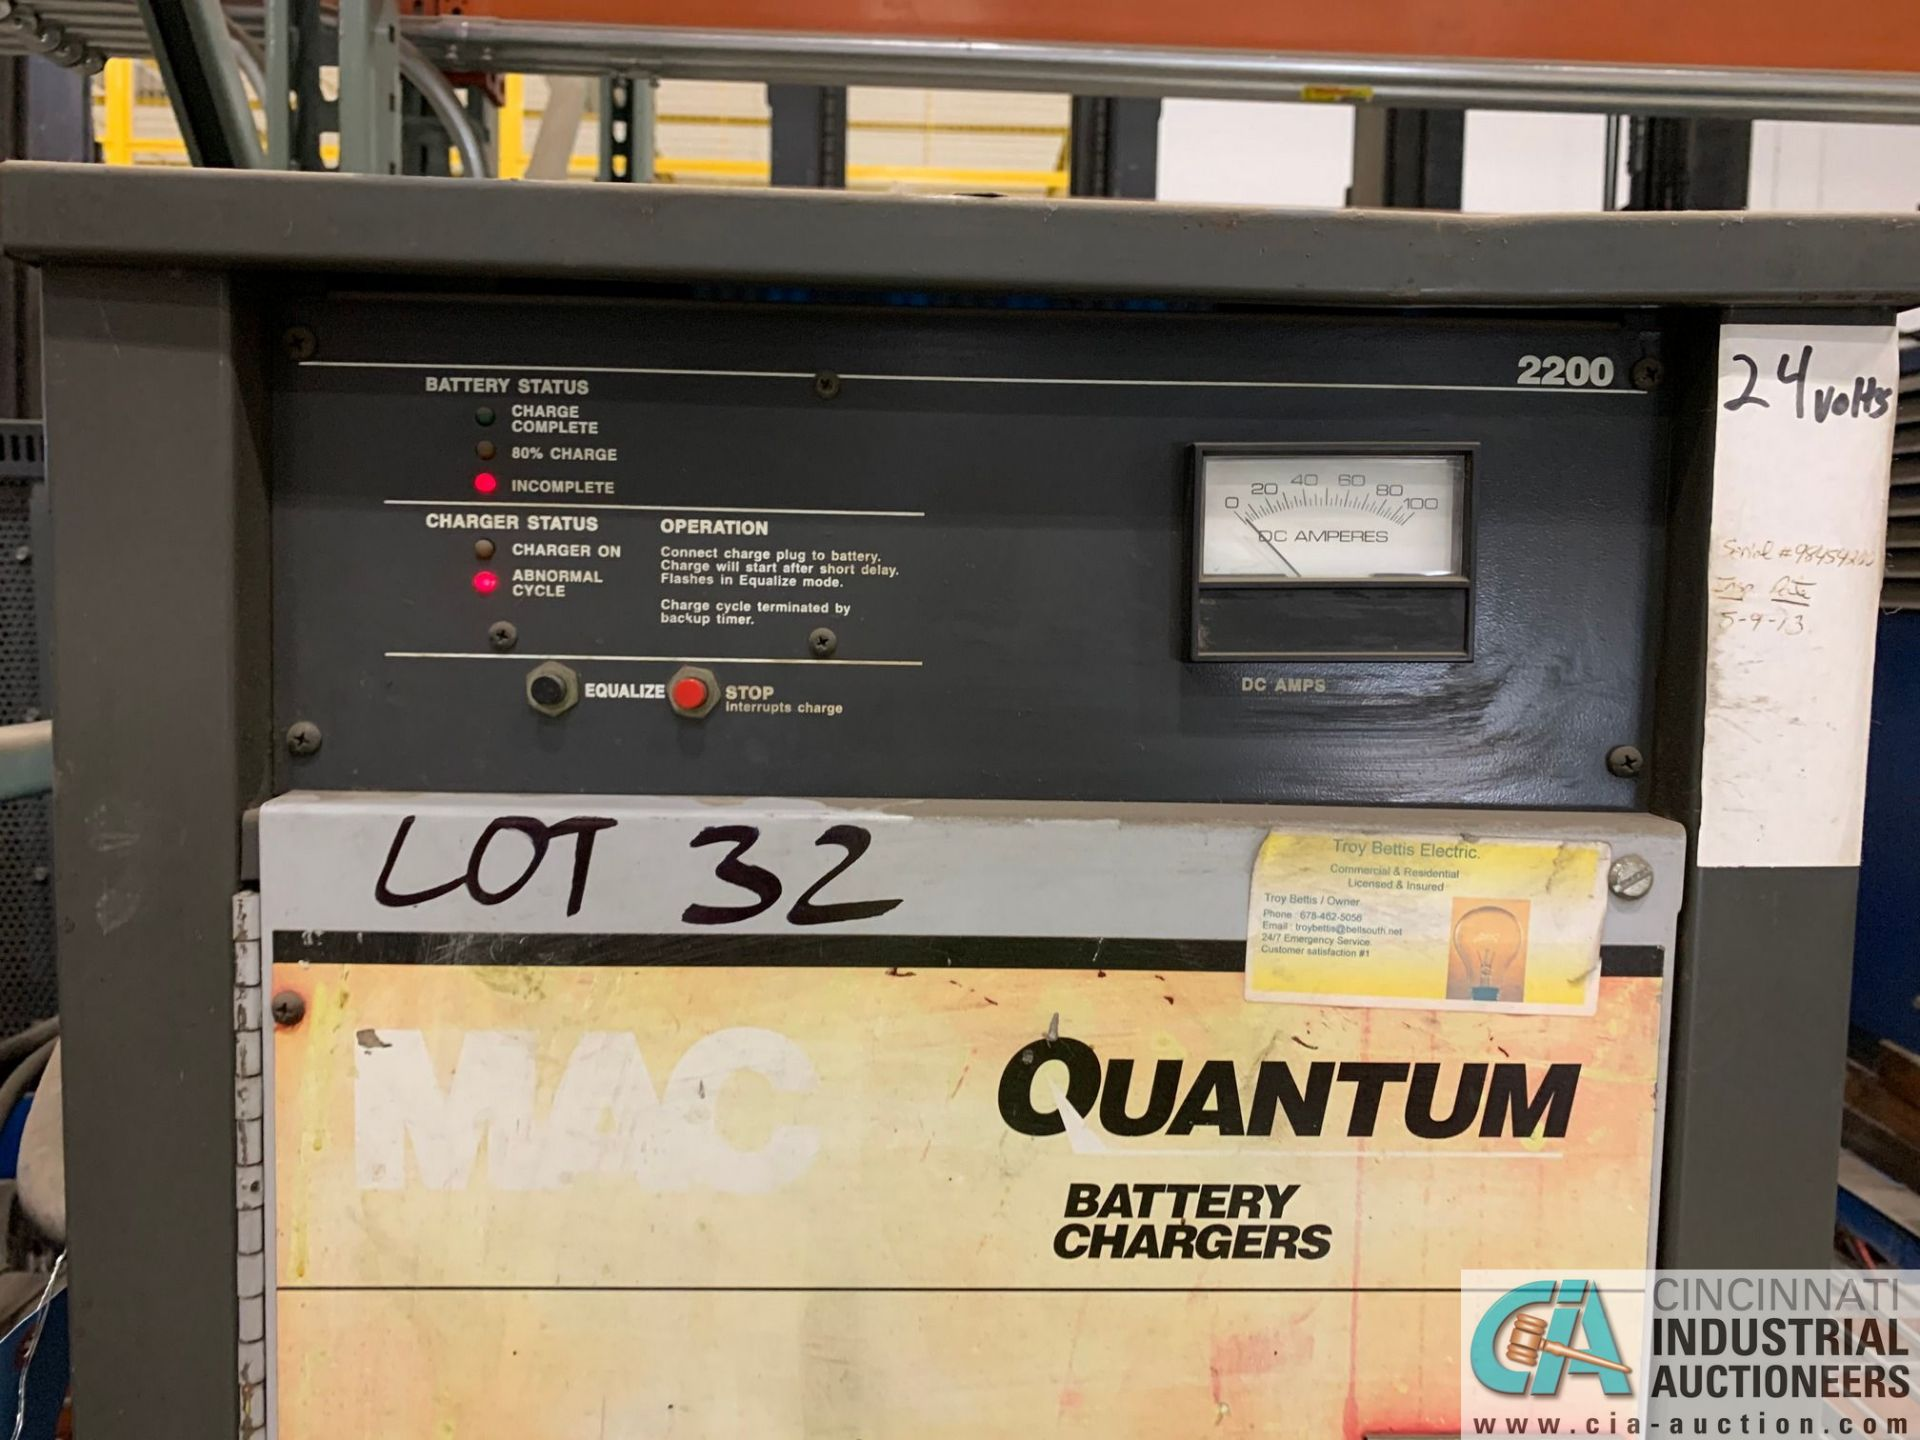 24-VOLT QUANTUM MODEL 12Q450B2A BATTERY CHARGER; S/N 98454200 (5400 OAKLEY INDUSTRIAL BLVD., - Image 3 of 3